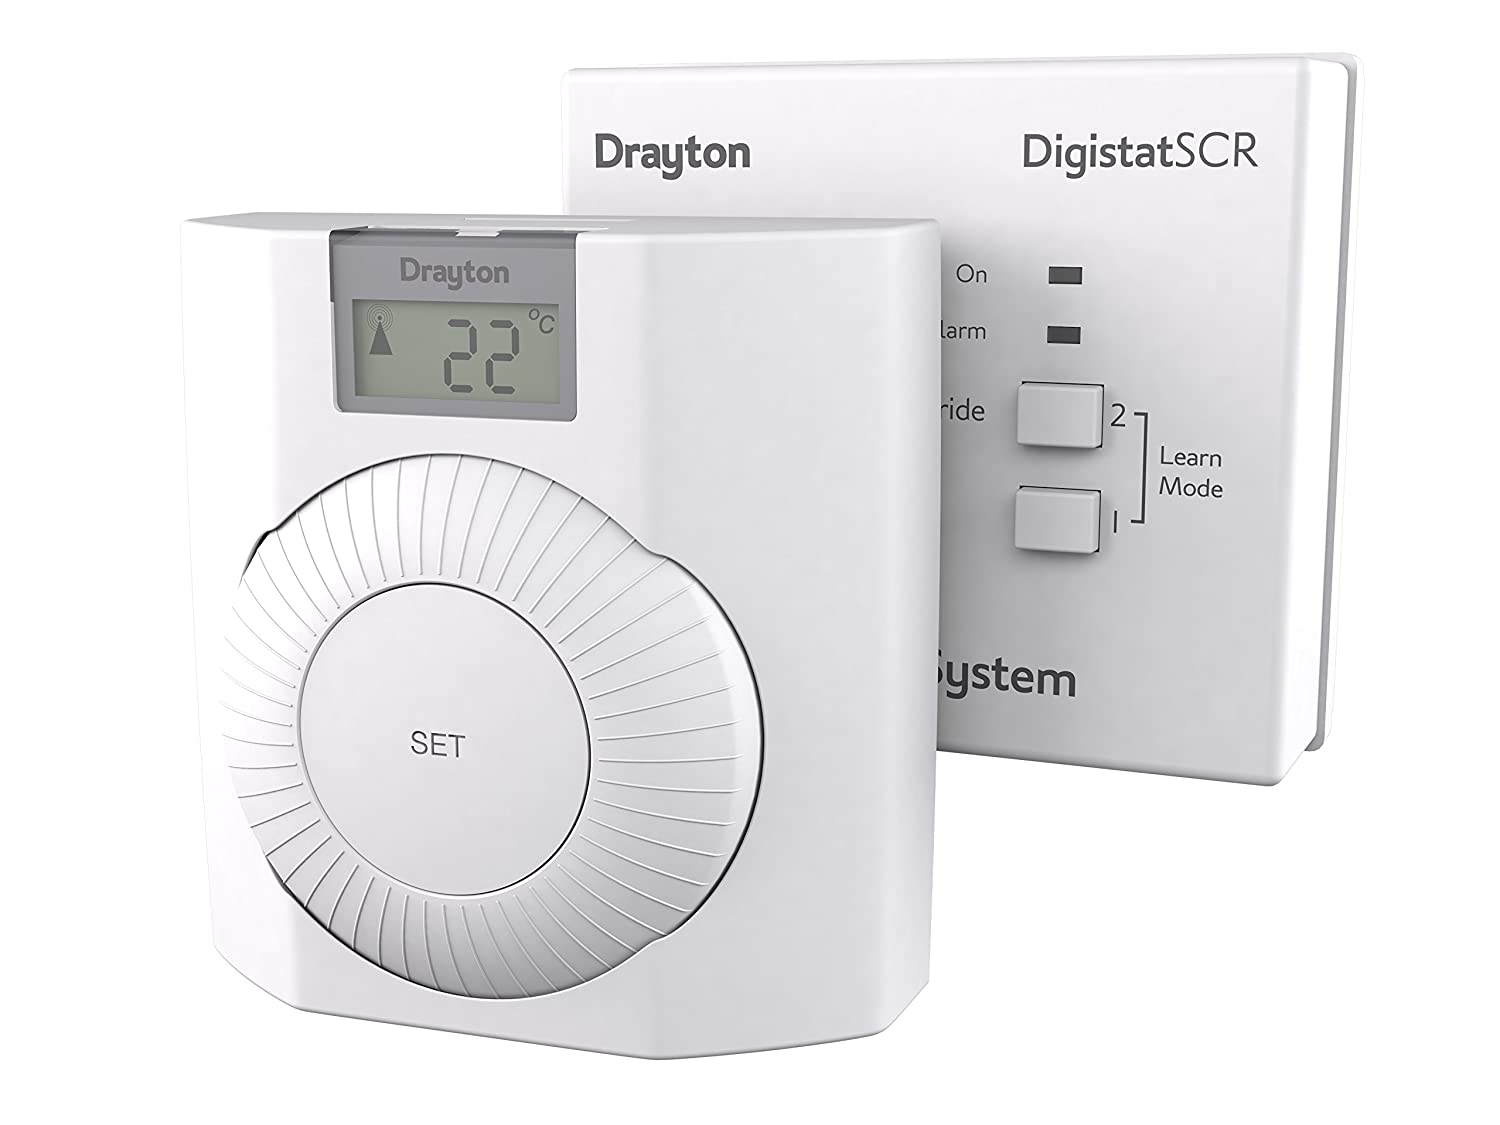 Drayton RF601 - Digistat Plus Rf Habitació n Wireless Termostato